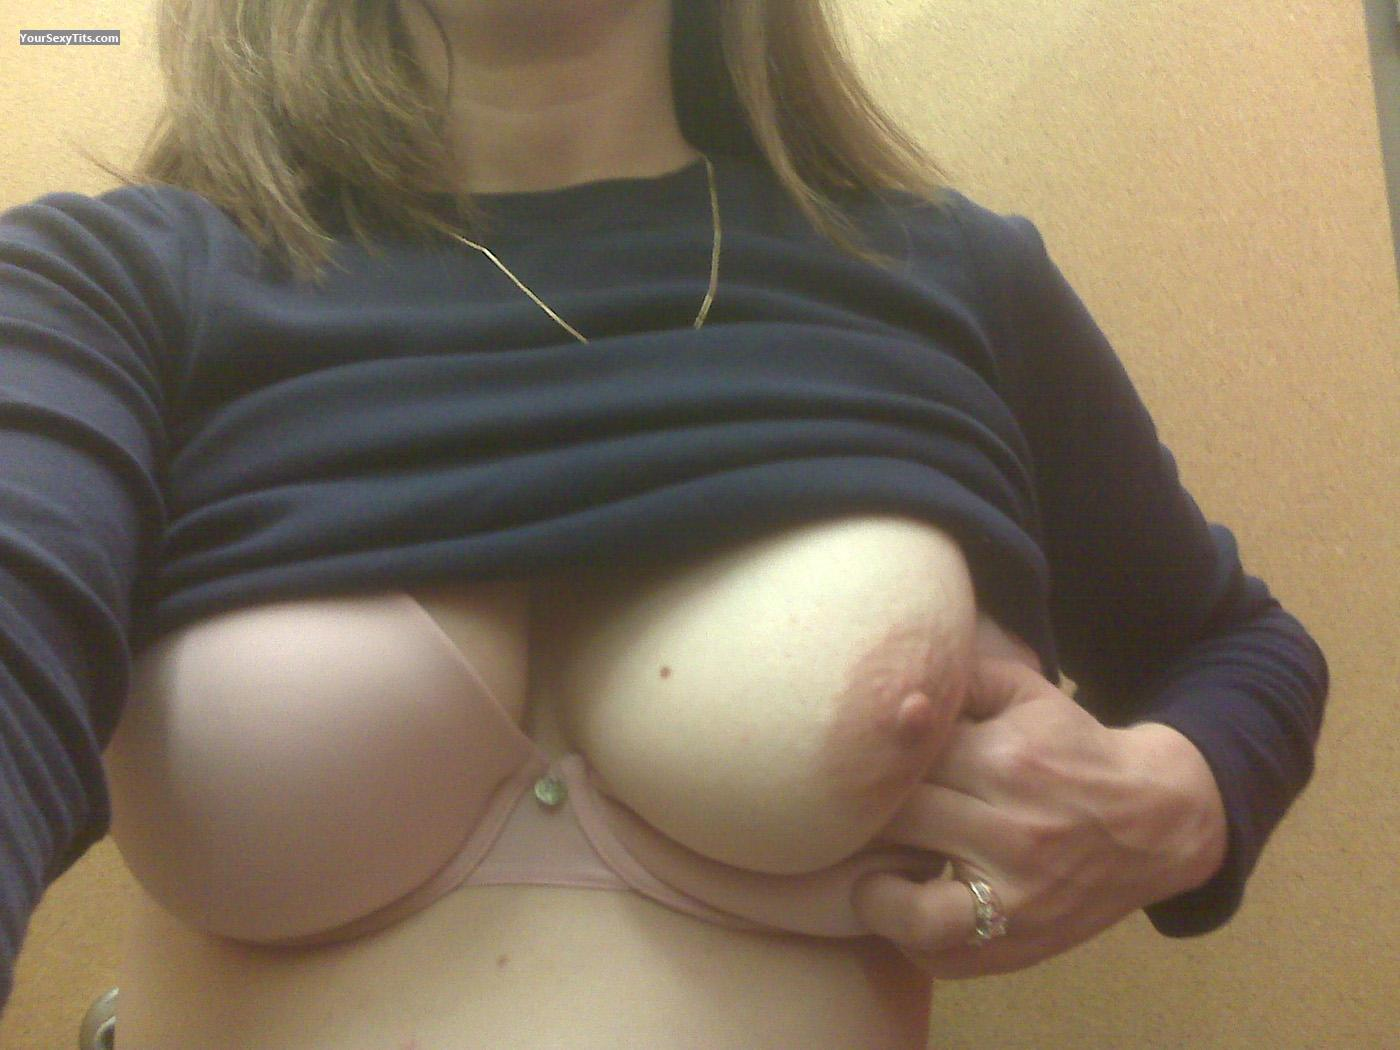 A quick tittie flash while shopping 9